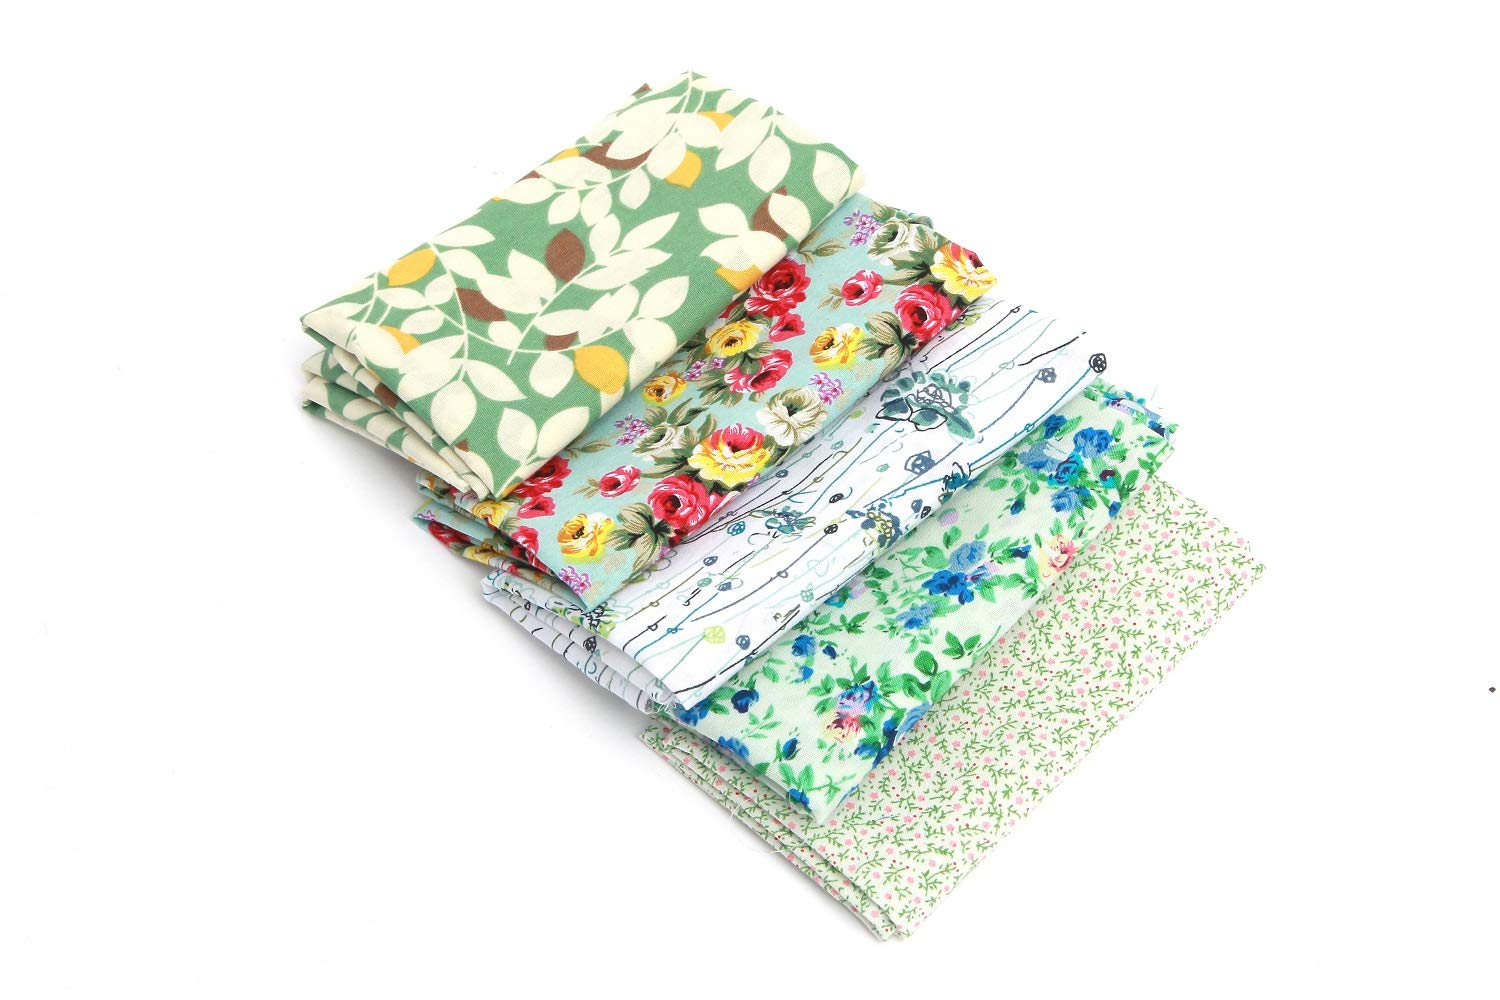 100X RayLineDo/® Bundle of 10cm X 10cm Different Pattern Stripe Dot Flowers Cotton Patchwork Fabric Bundle Squares Quilting Scrapbooking Sewing Artcraft Bag Handbag Making Project Fabric-Thin Fabric